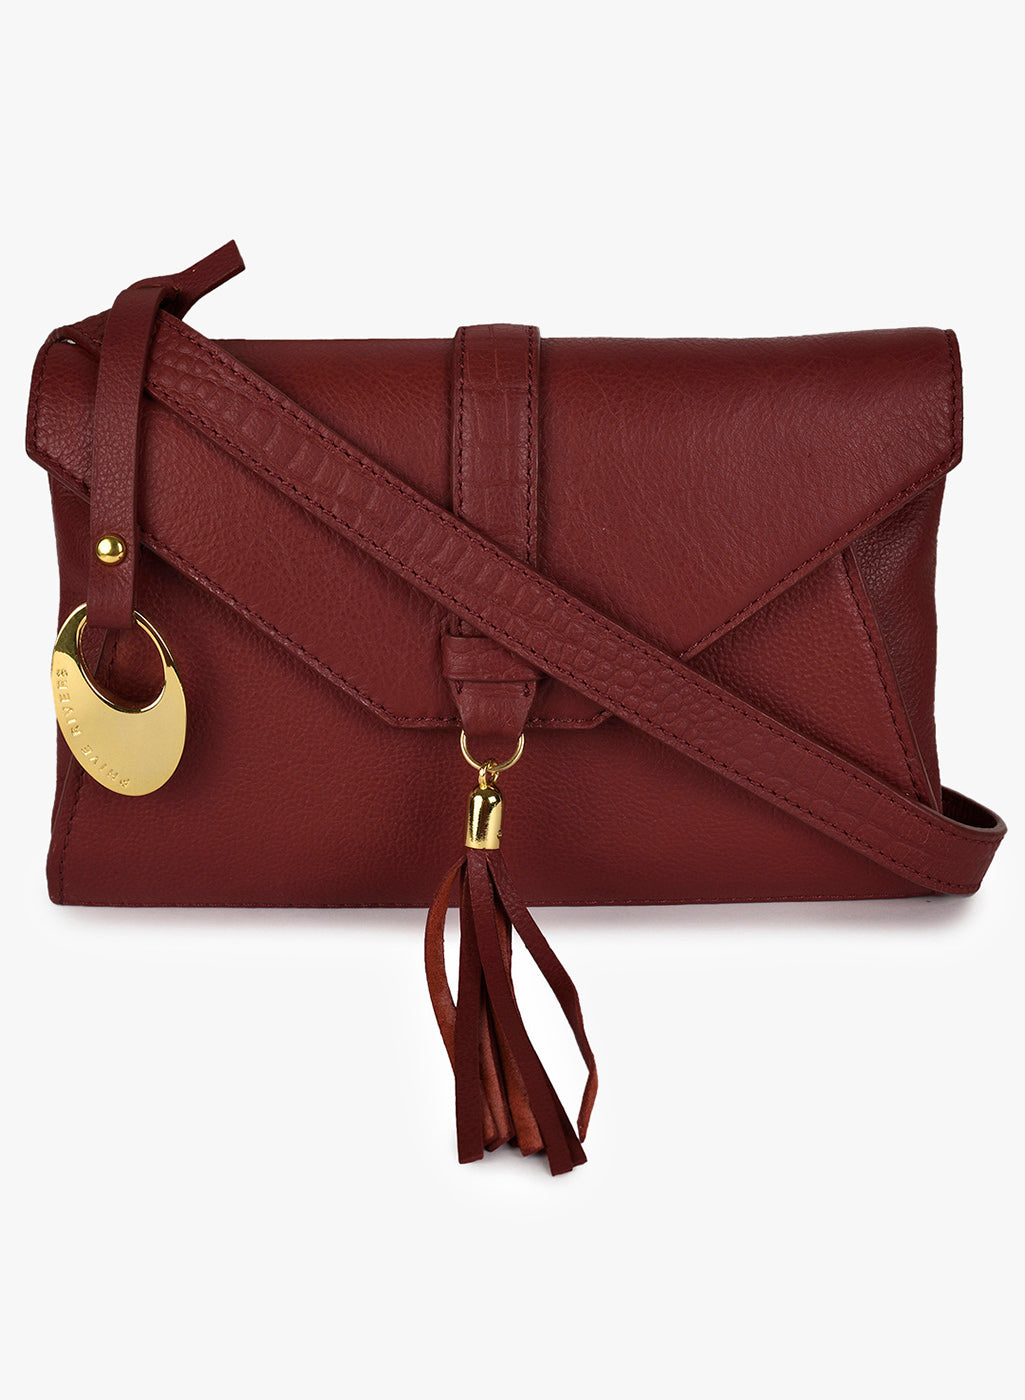 Phive Rivers Women's Leather Crossbody Bag  (Red_PR546)